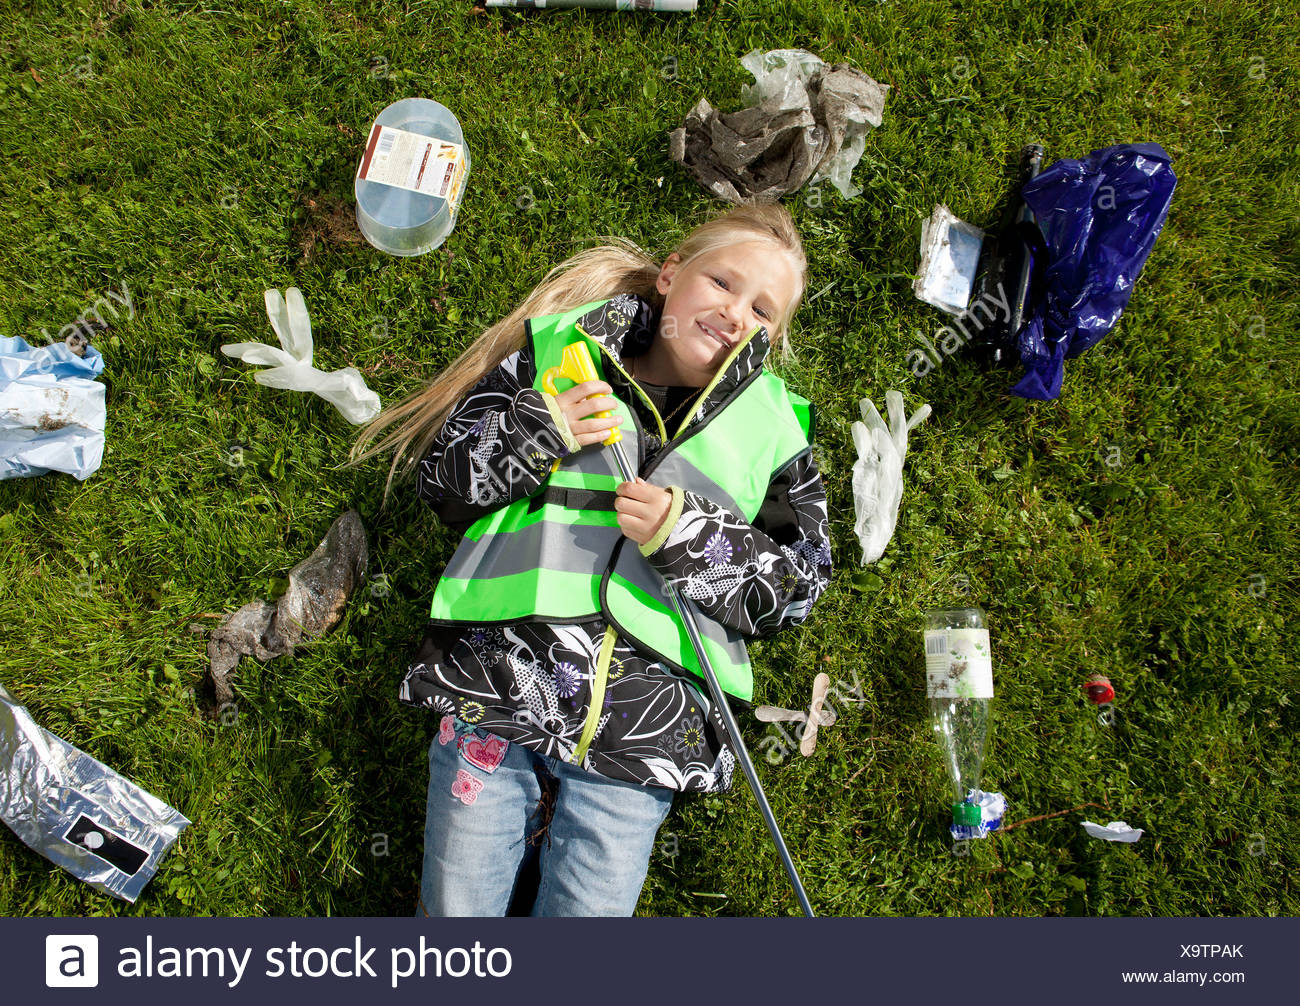 Girl laying in garbage on lawn - Stock Image